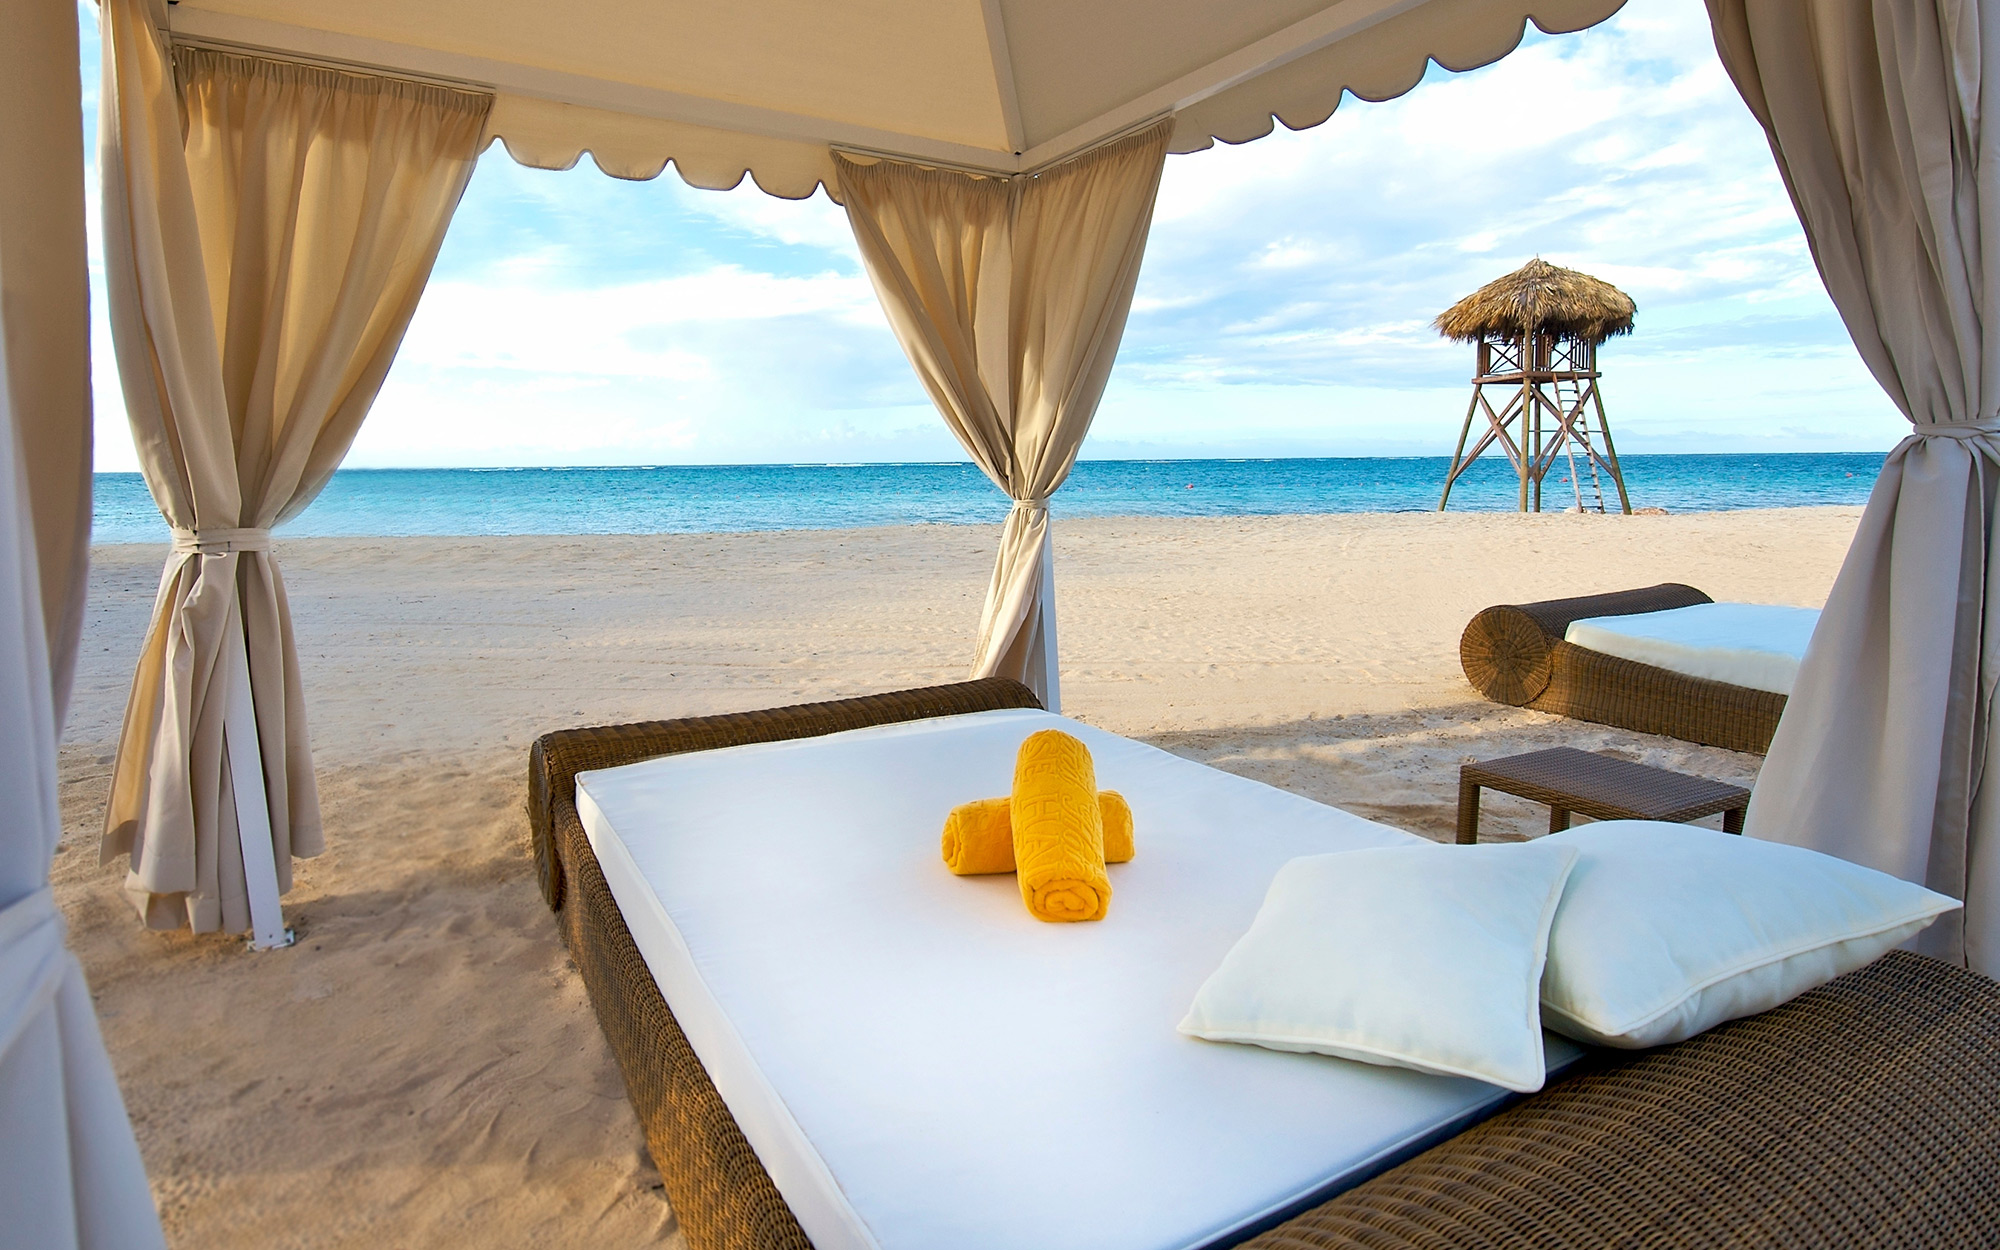 Caribbean Group Getaways: Iberostar Grand Rose Hall in Montego Bay, Jamaica